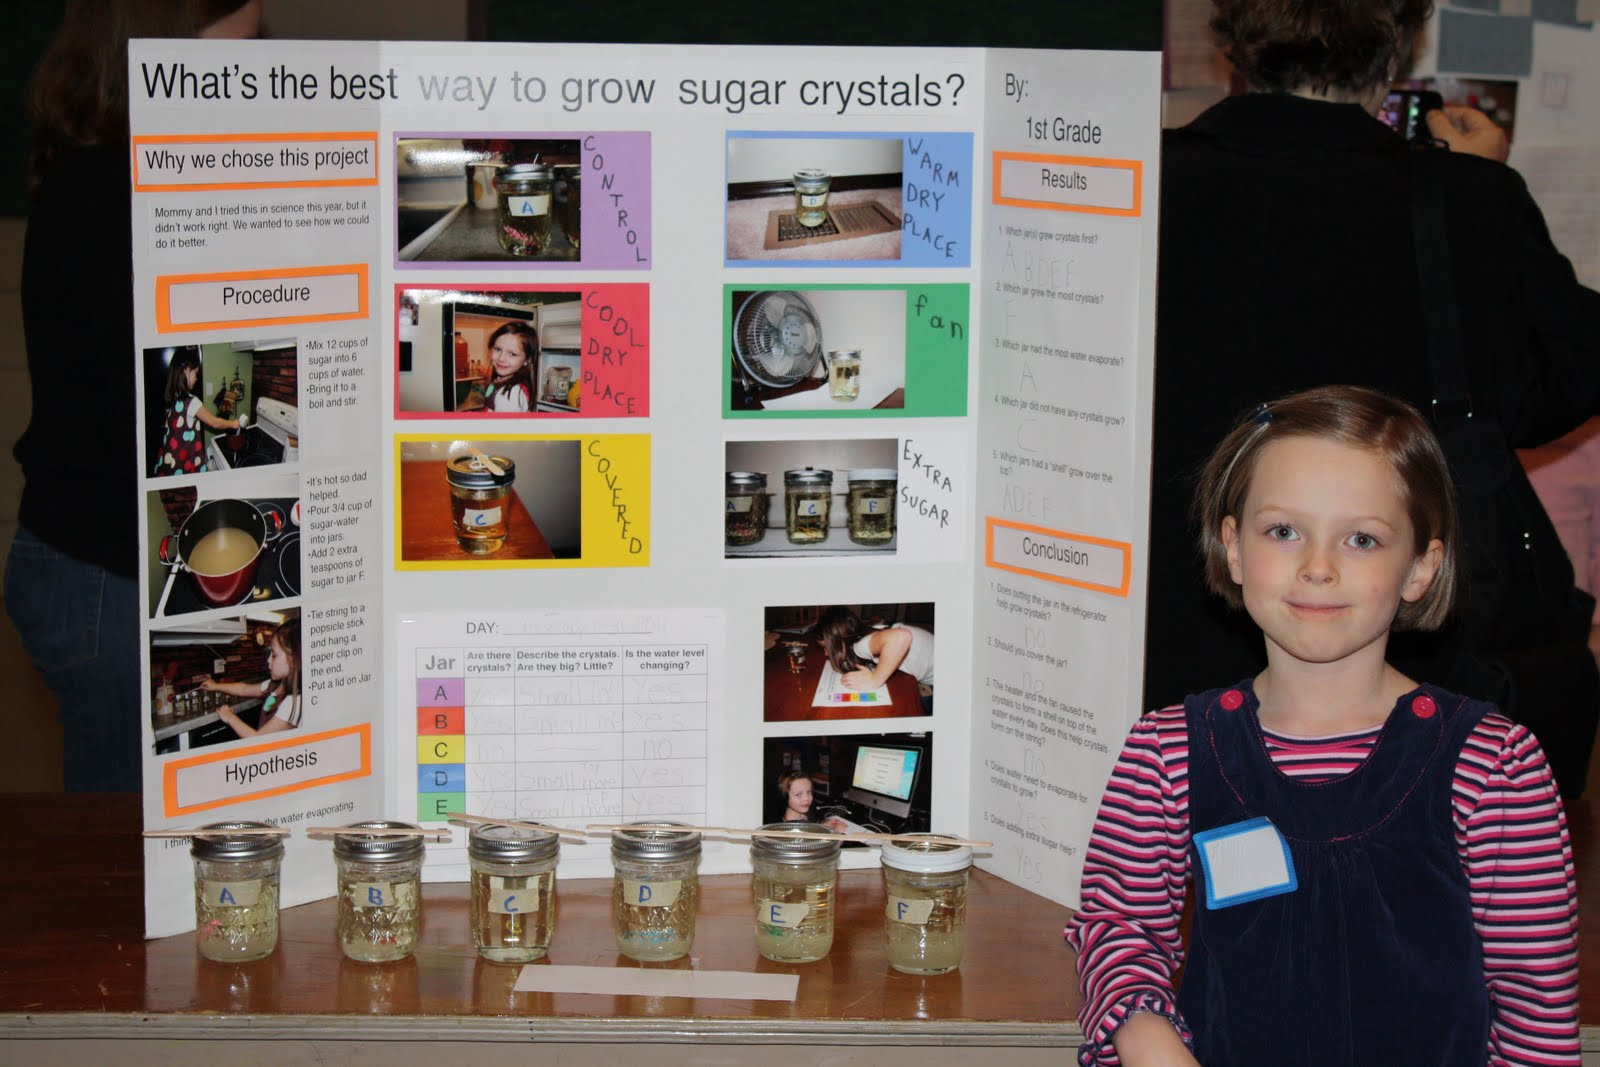 IMG_9080  Th Grade Science Project Salt Crystals on gifted and talented science projects, 6th grade reading projects, college science projects, the hobbit science projects, question and hypothesis science projects, volcano science projects, reading science projects, pinterest preschool science projects, exhibition science projects, magnetic simple projects, baking soda rocket science projects, teachers science projects, united states 5th grade projects, band science projects, all the science projects, 5th grade ela projects, 4 grade projects, k5 science projects,